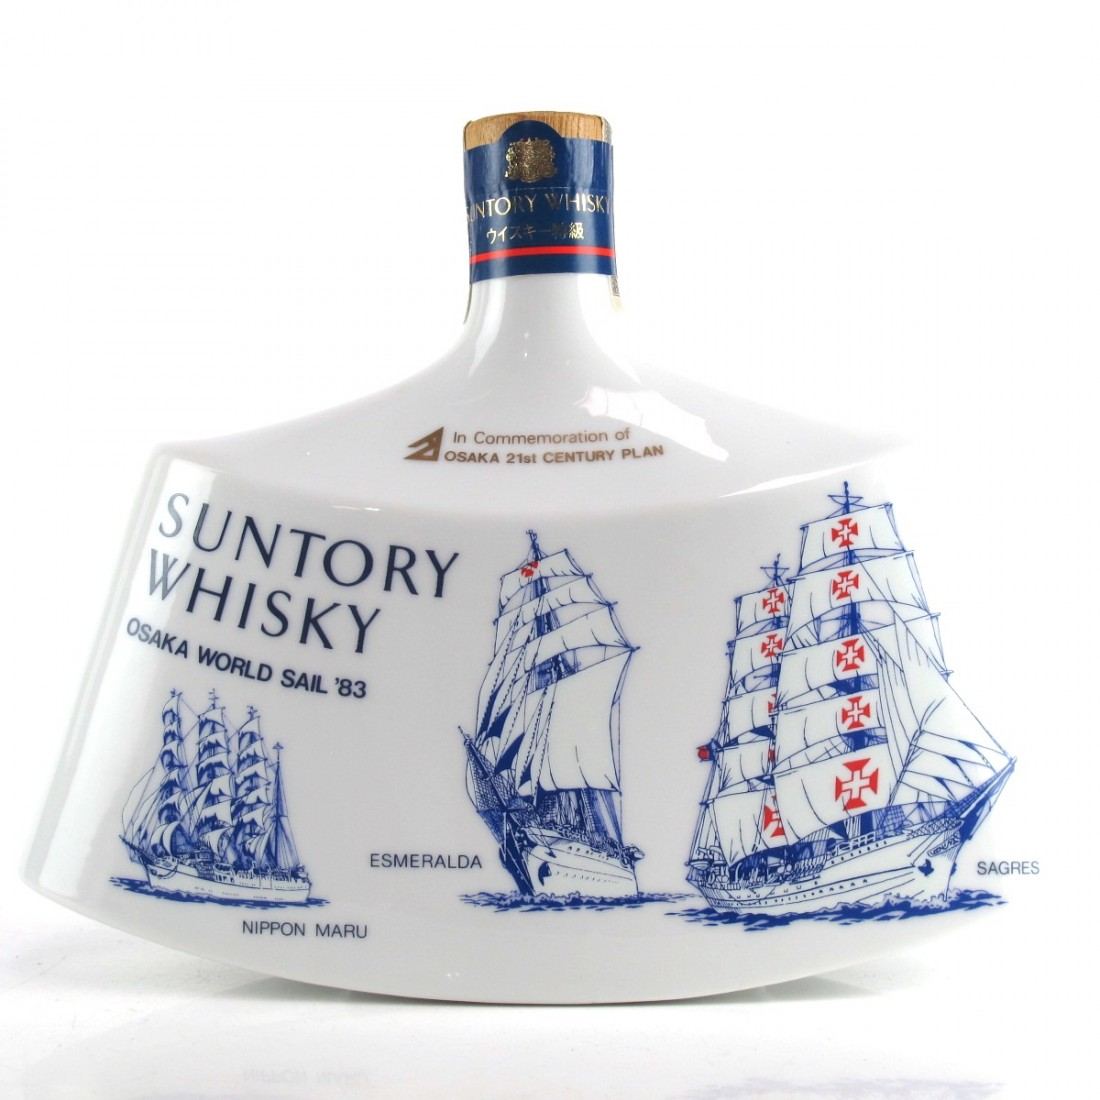 Suntory Blended Whisky Decanter / Osaka World Sail 1983